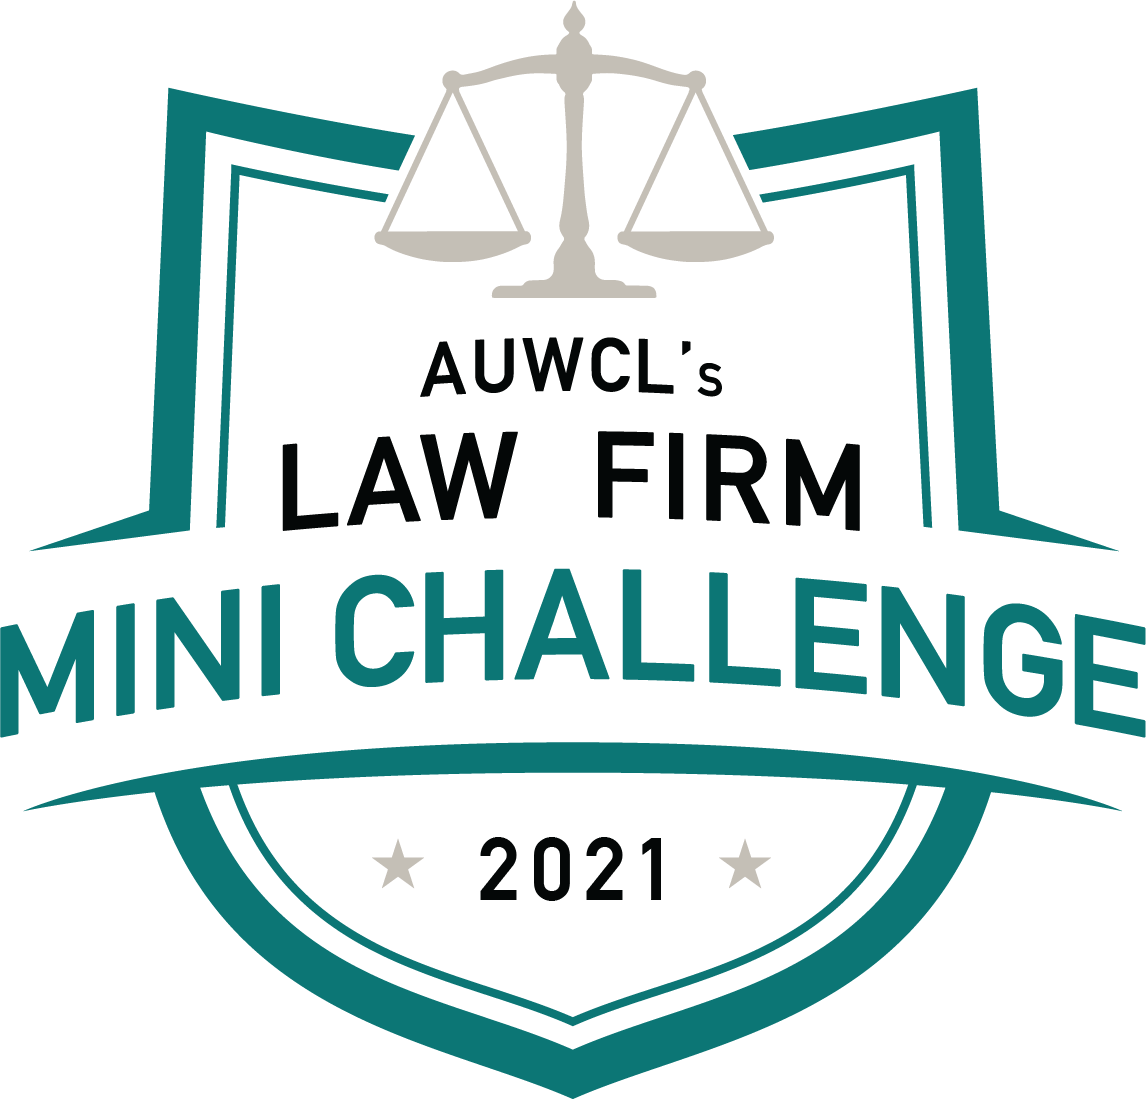 Law Firm Mini Challenge logo